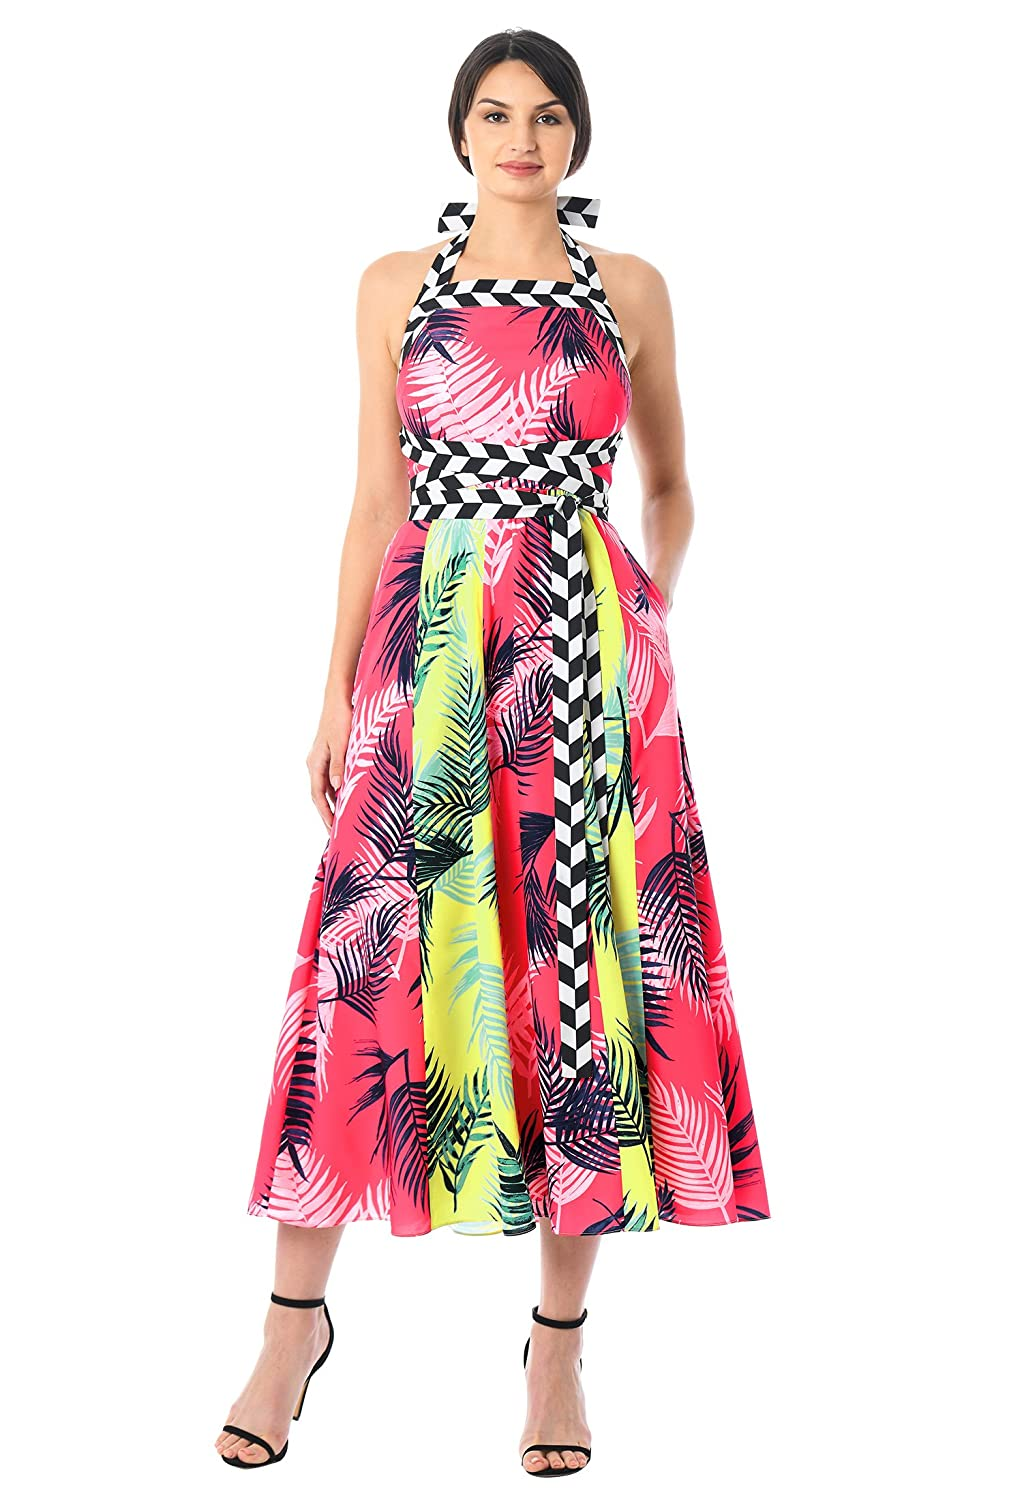 7e48c11bc8b9 ... Square neck with contrast halter ties to the back, Elastic high back,  Bodice darts to shape, Seamed waist, Box-pleat full skirt, Side seam  pockets, ...